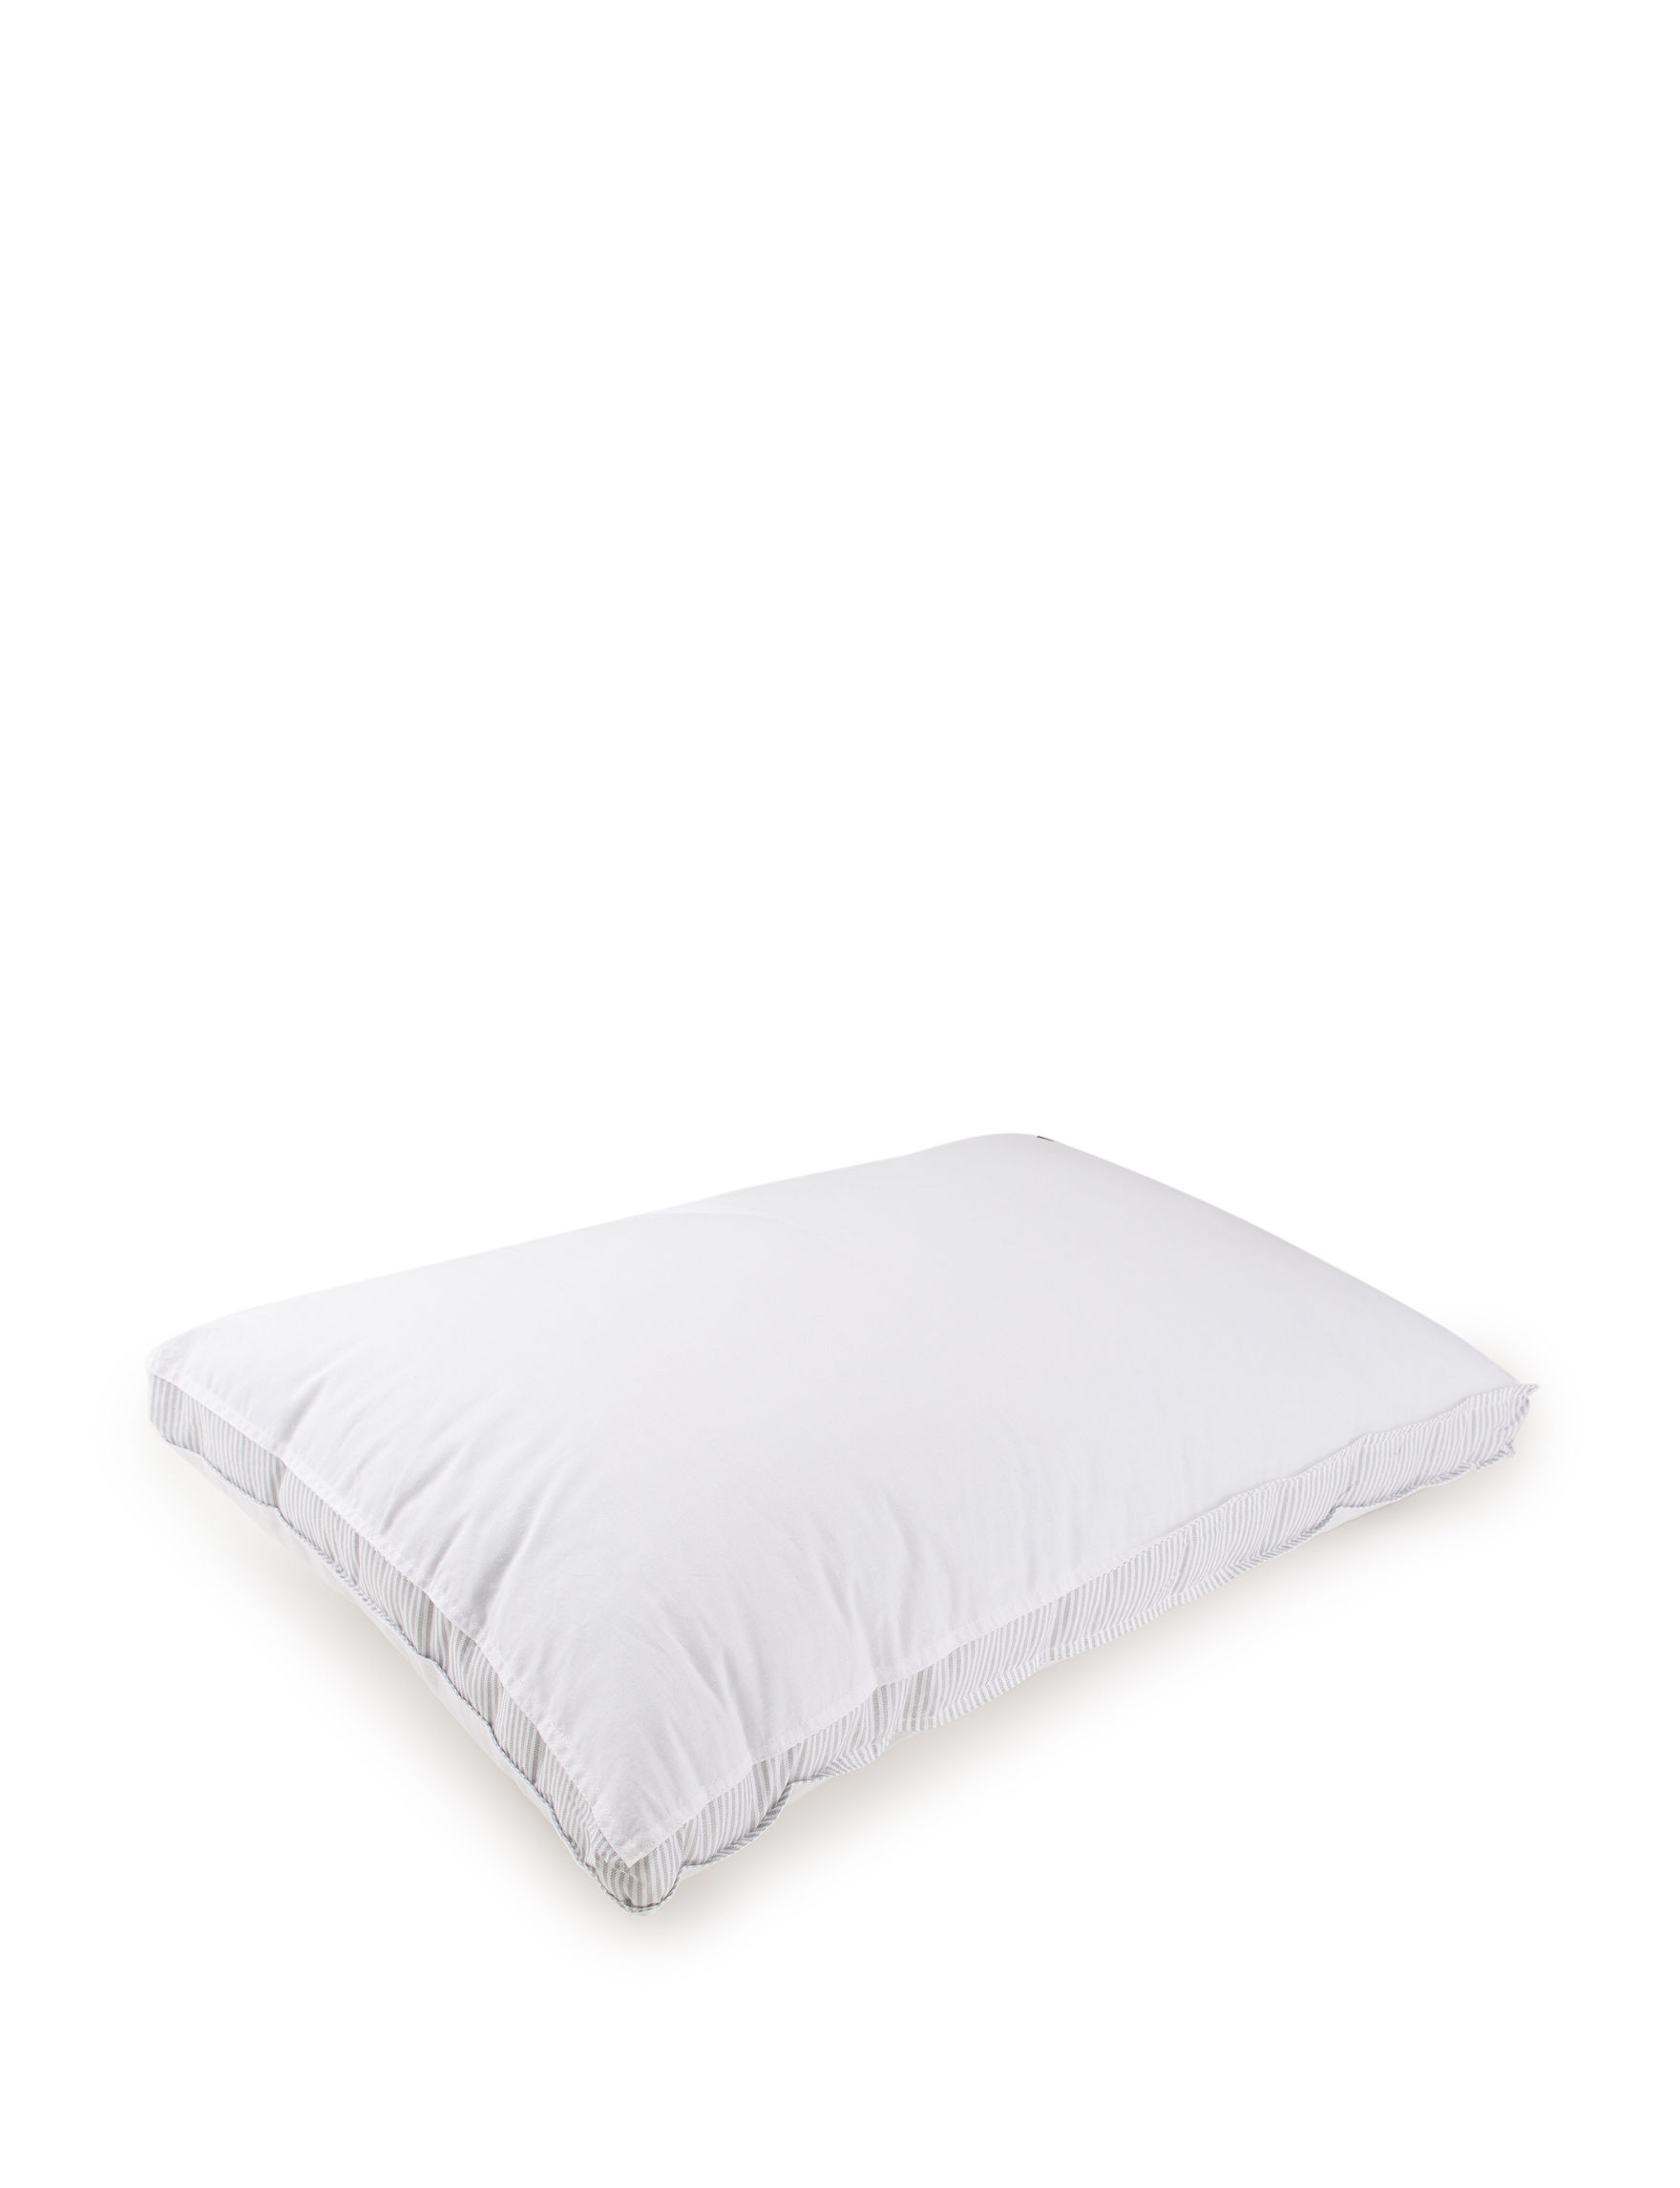 Tommy Hilfiger White/Grey Bed Pillows